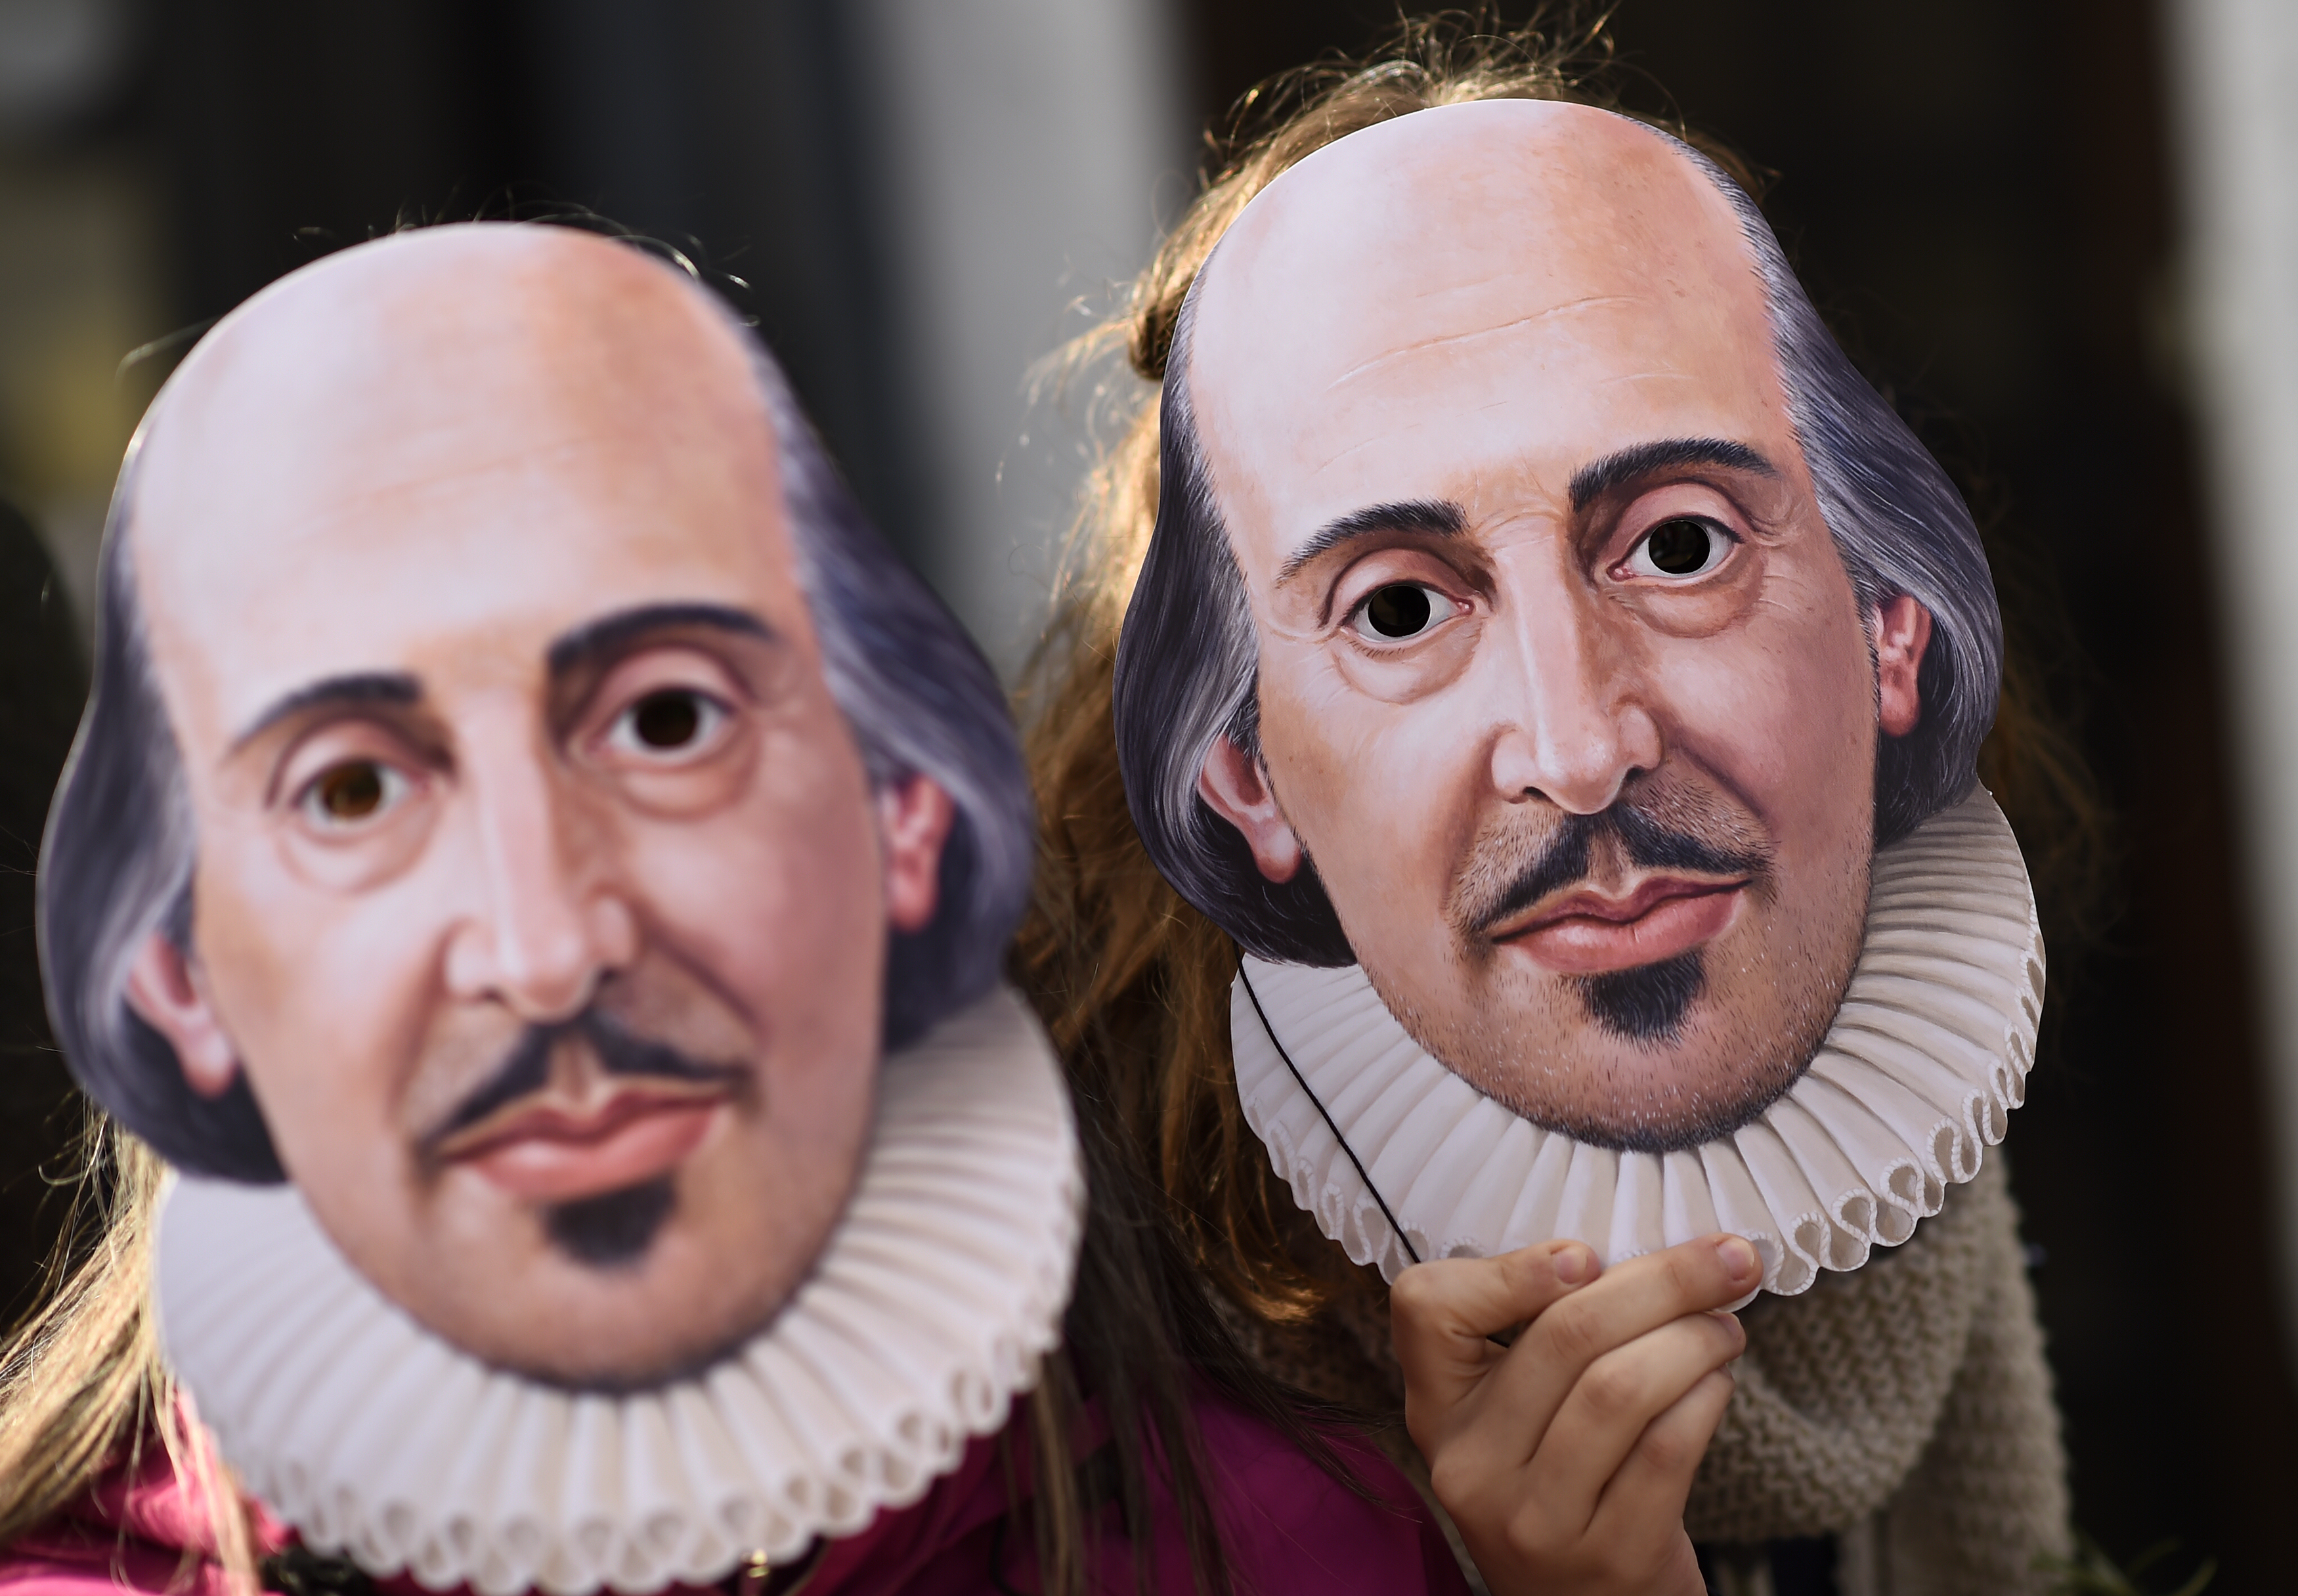 People hold up face masks with William Shakespeare's portrait during celebrations to mark the 400th anniversary of the playwright's death in the city of his birth, Stratford-Upon-Avon